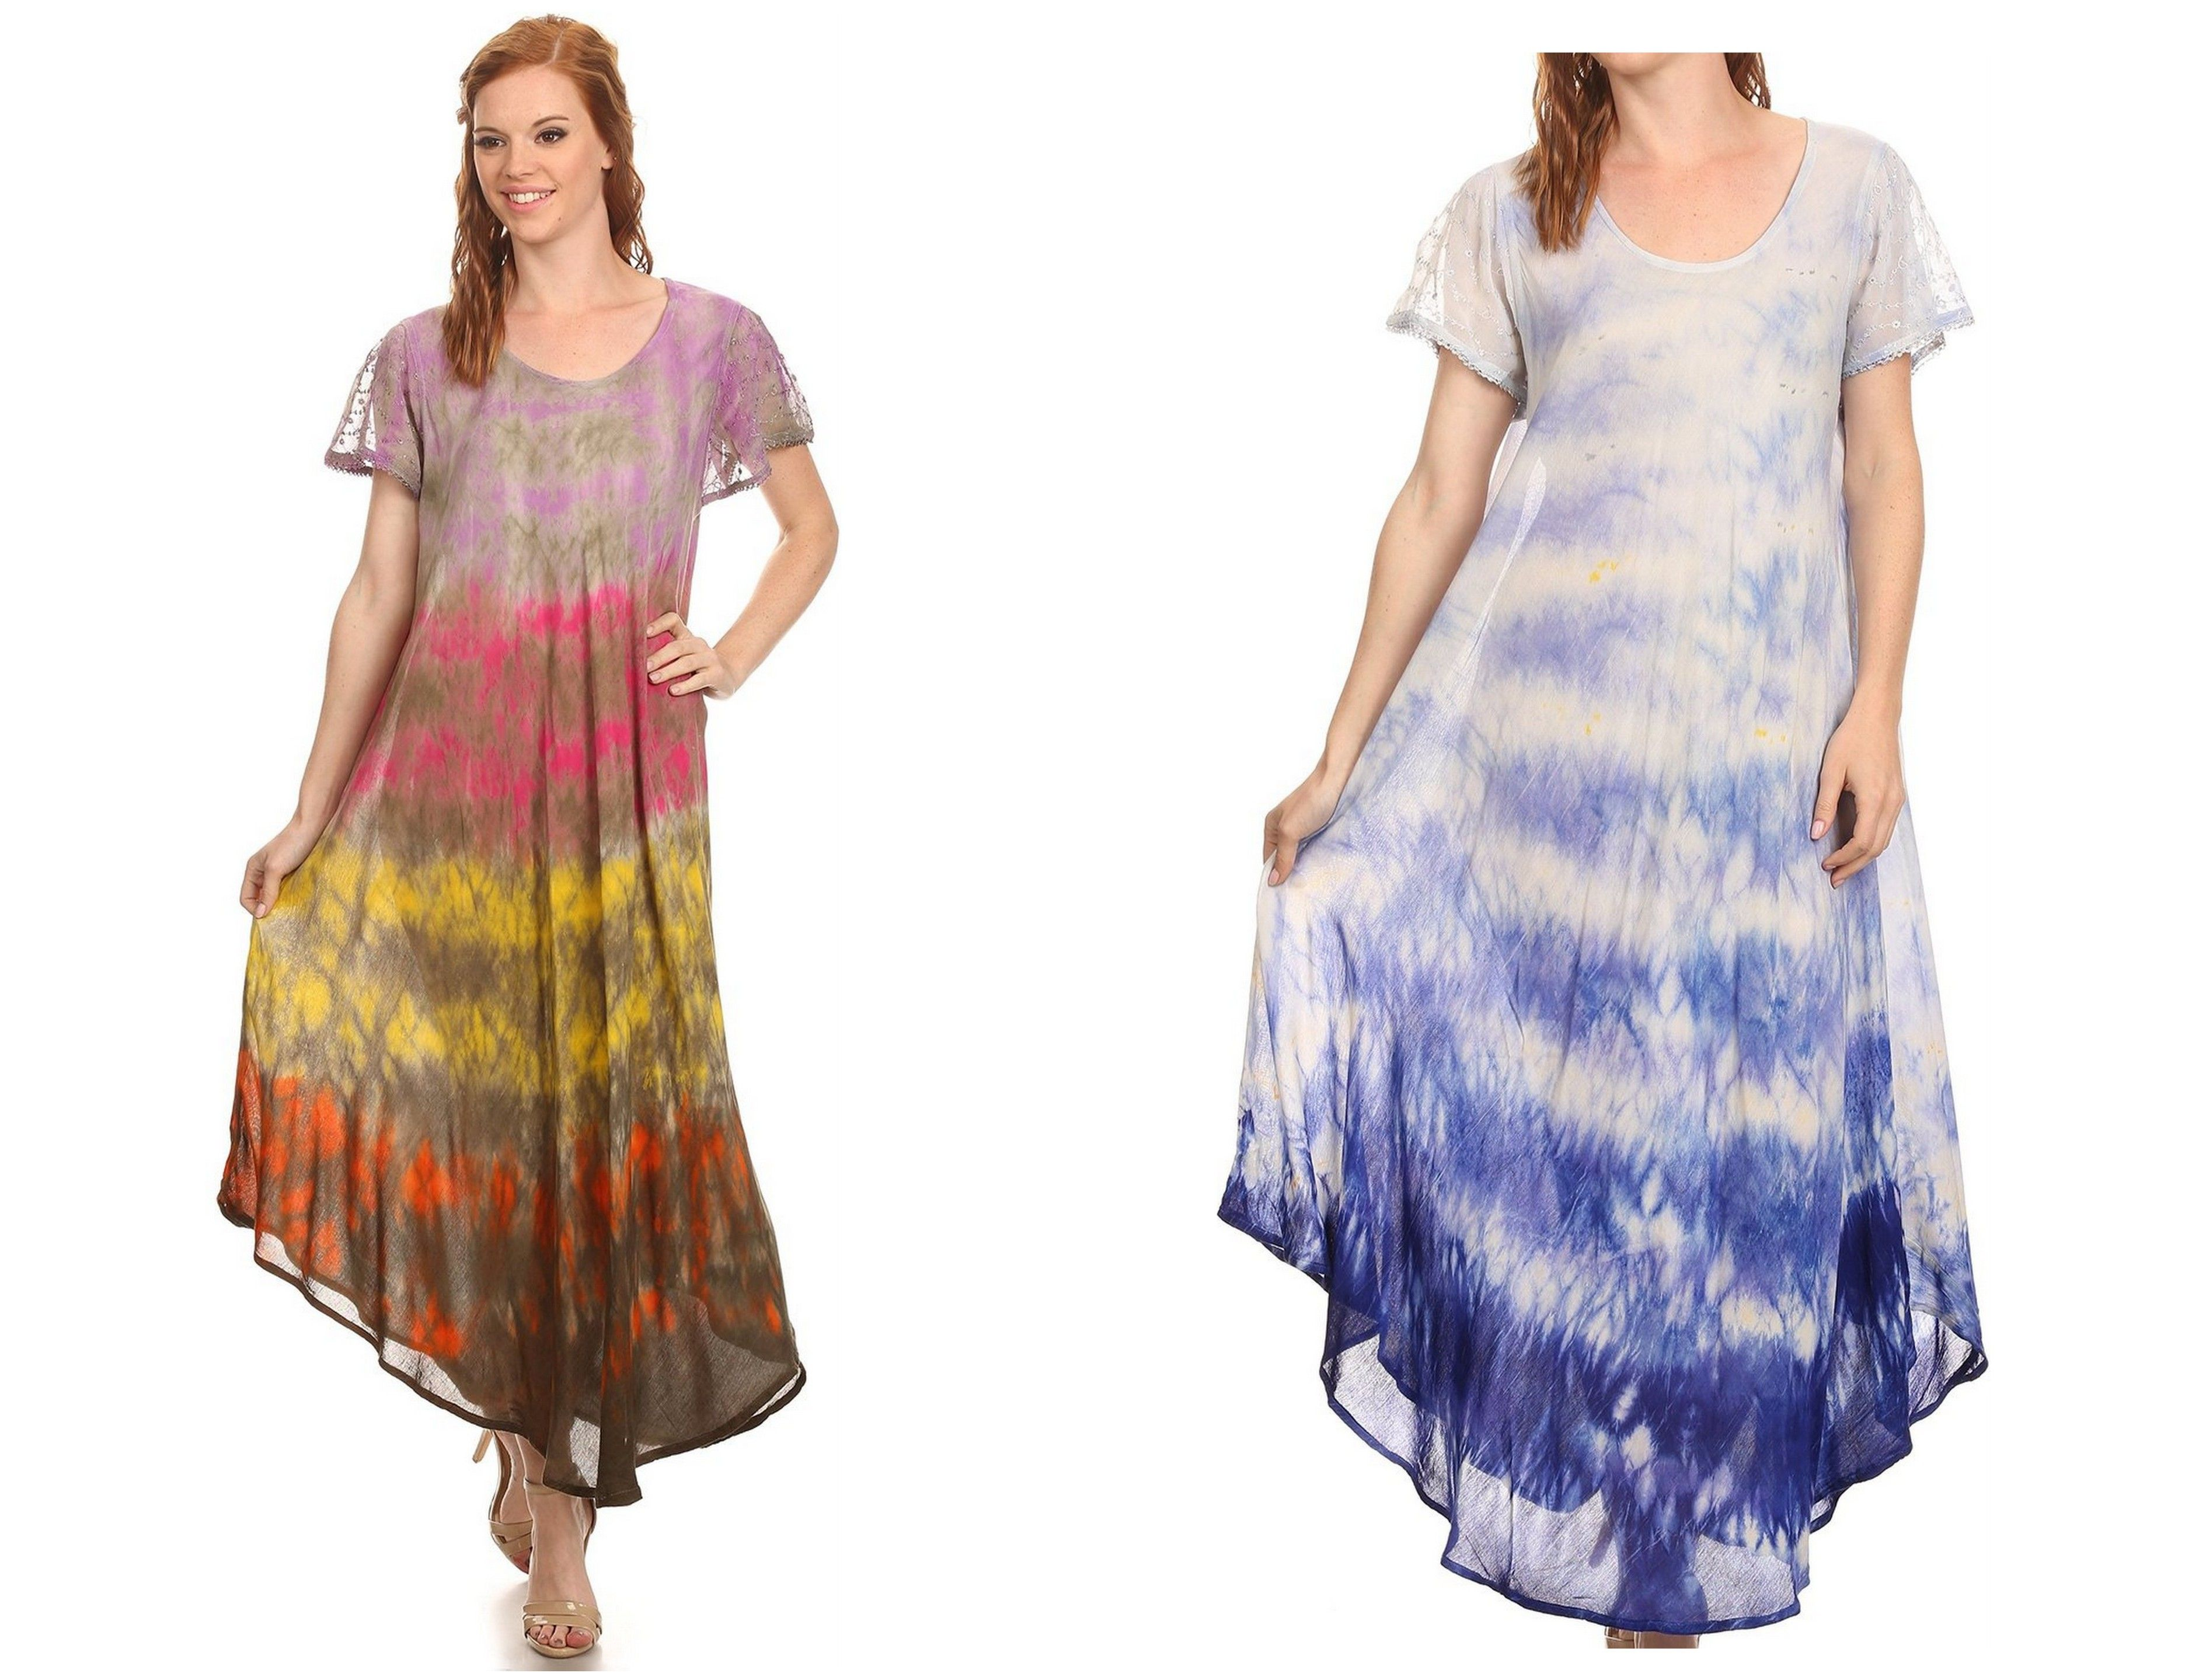 This dress is a gorgeous long tall dress. It is super lightweight and soft. Fabric is semi opaque to opaque. Long scoop neck, with embroidery lace cap sleeves with embroidered designs. The dress comes in a tie dye ombre washed look. Very colorful and fits wide and loose for the most elegant and flattering look! This dress is easily worn alone or as a coverup for warmer weather and trips to the beach! Just throw over beachwear.  #style #outfit #glam #shopping #dress #designer